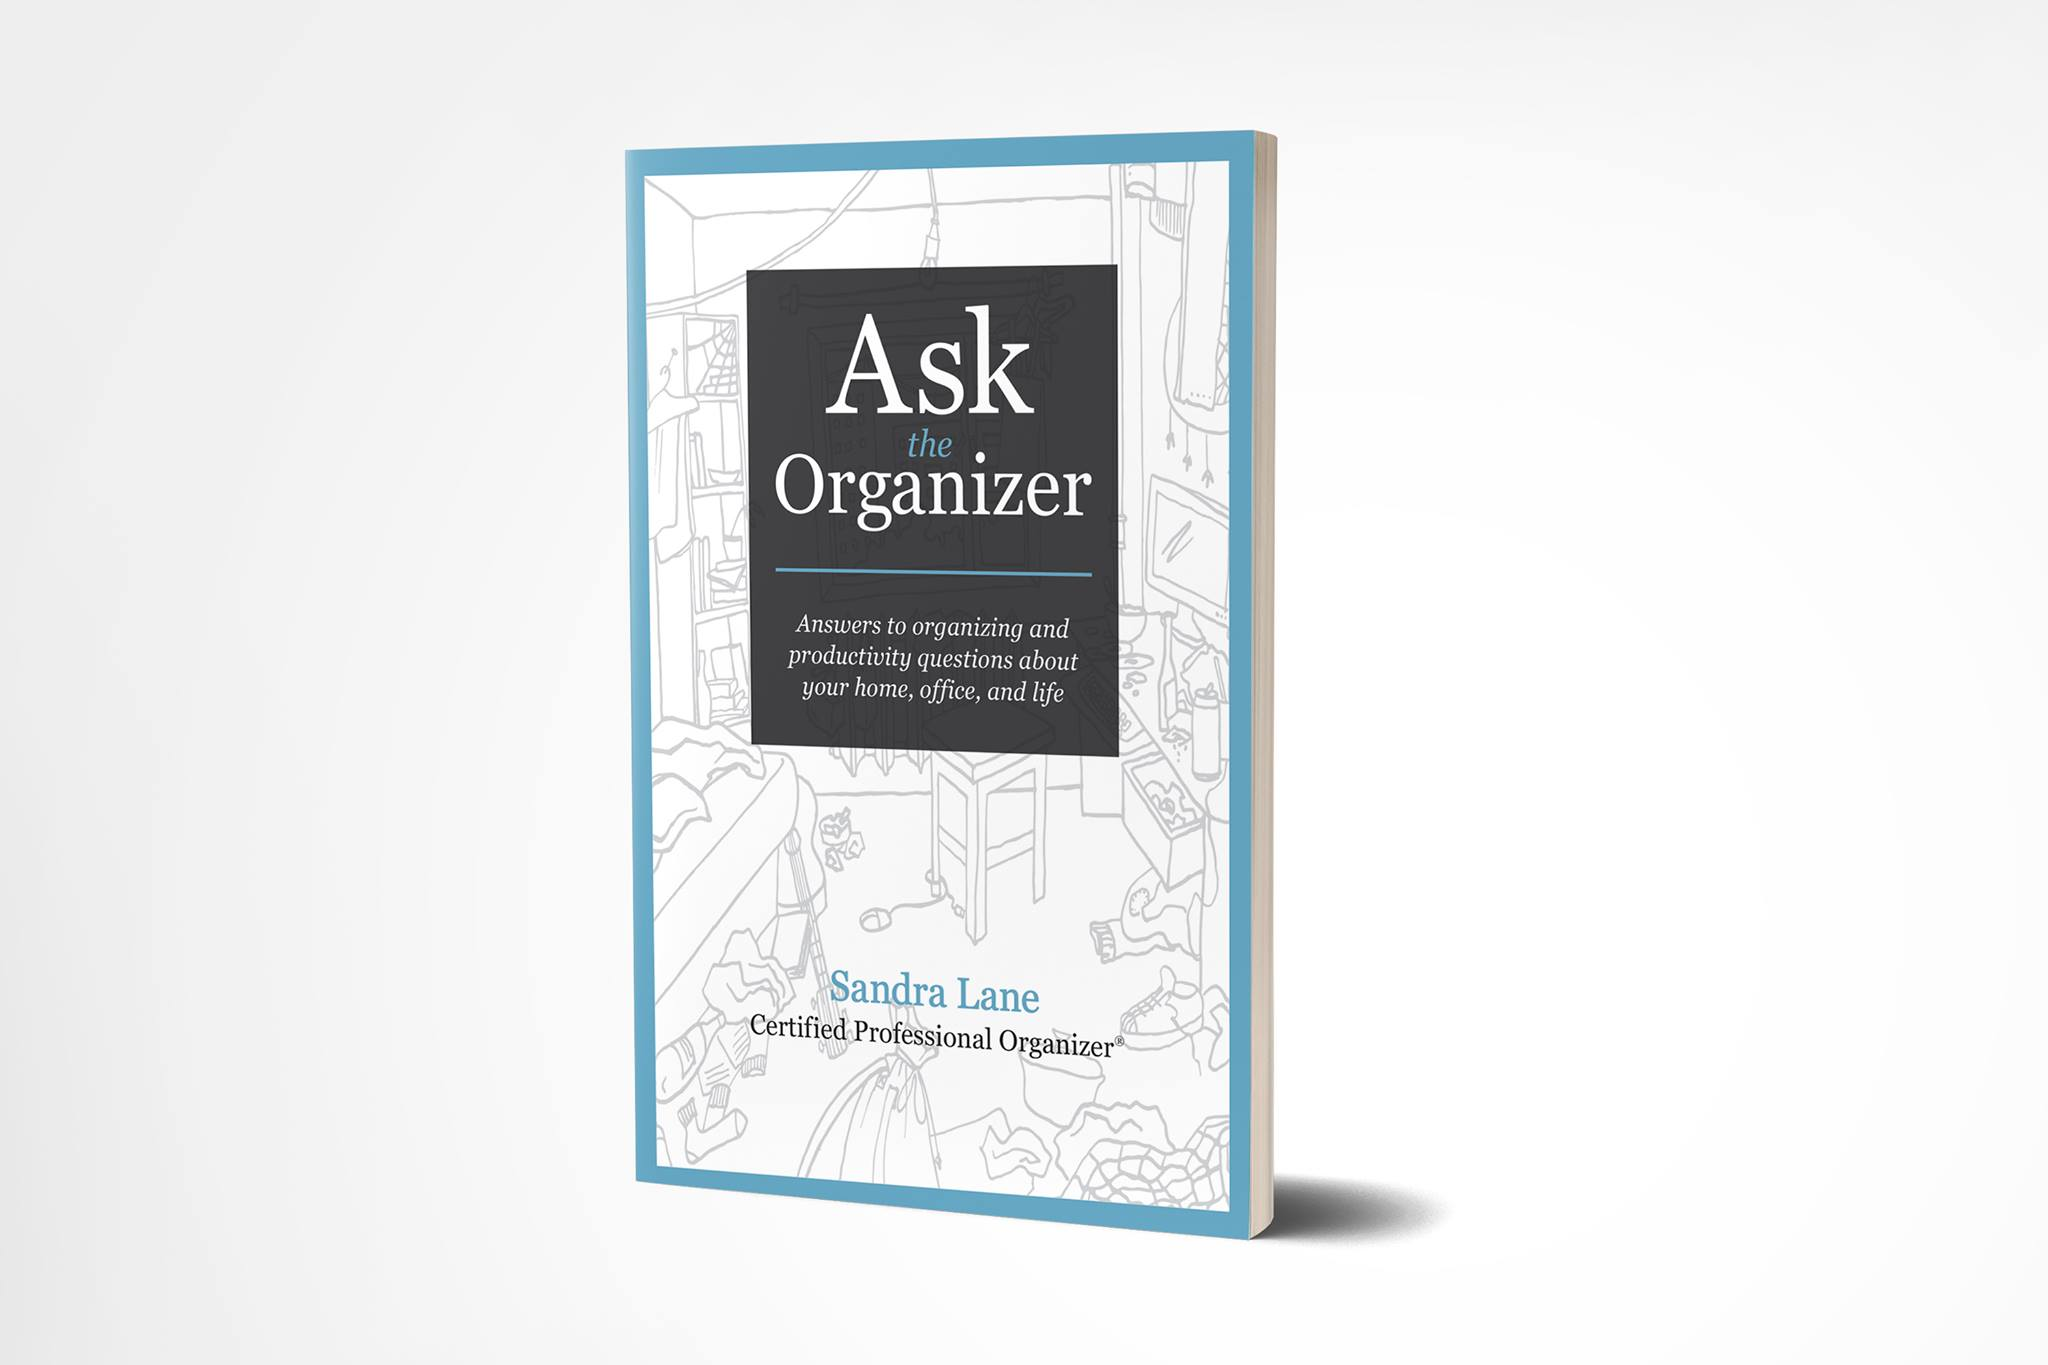 Ask the Organizer